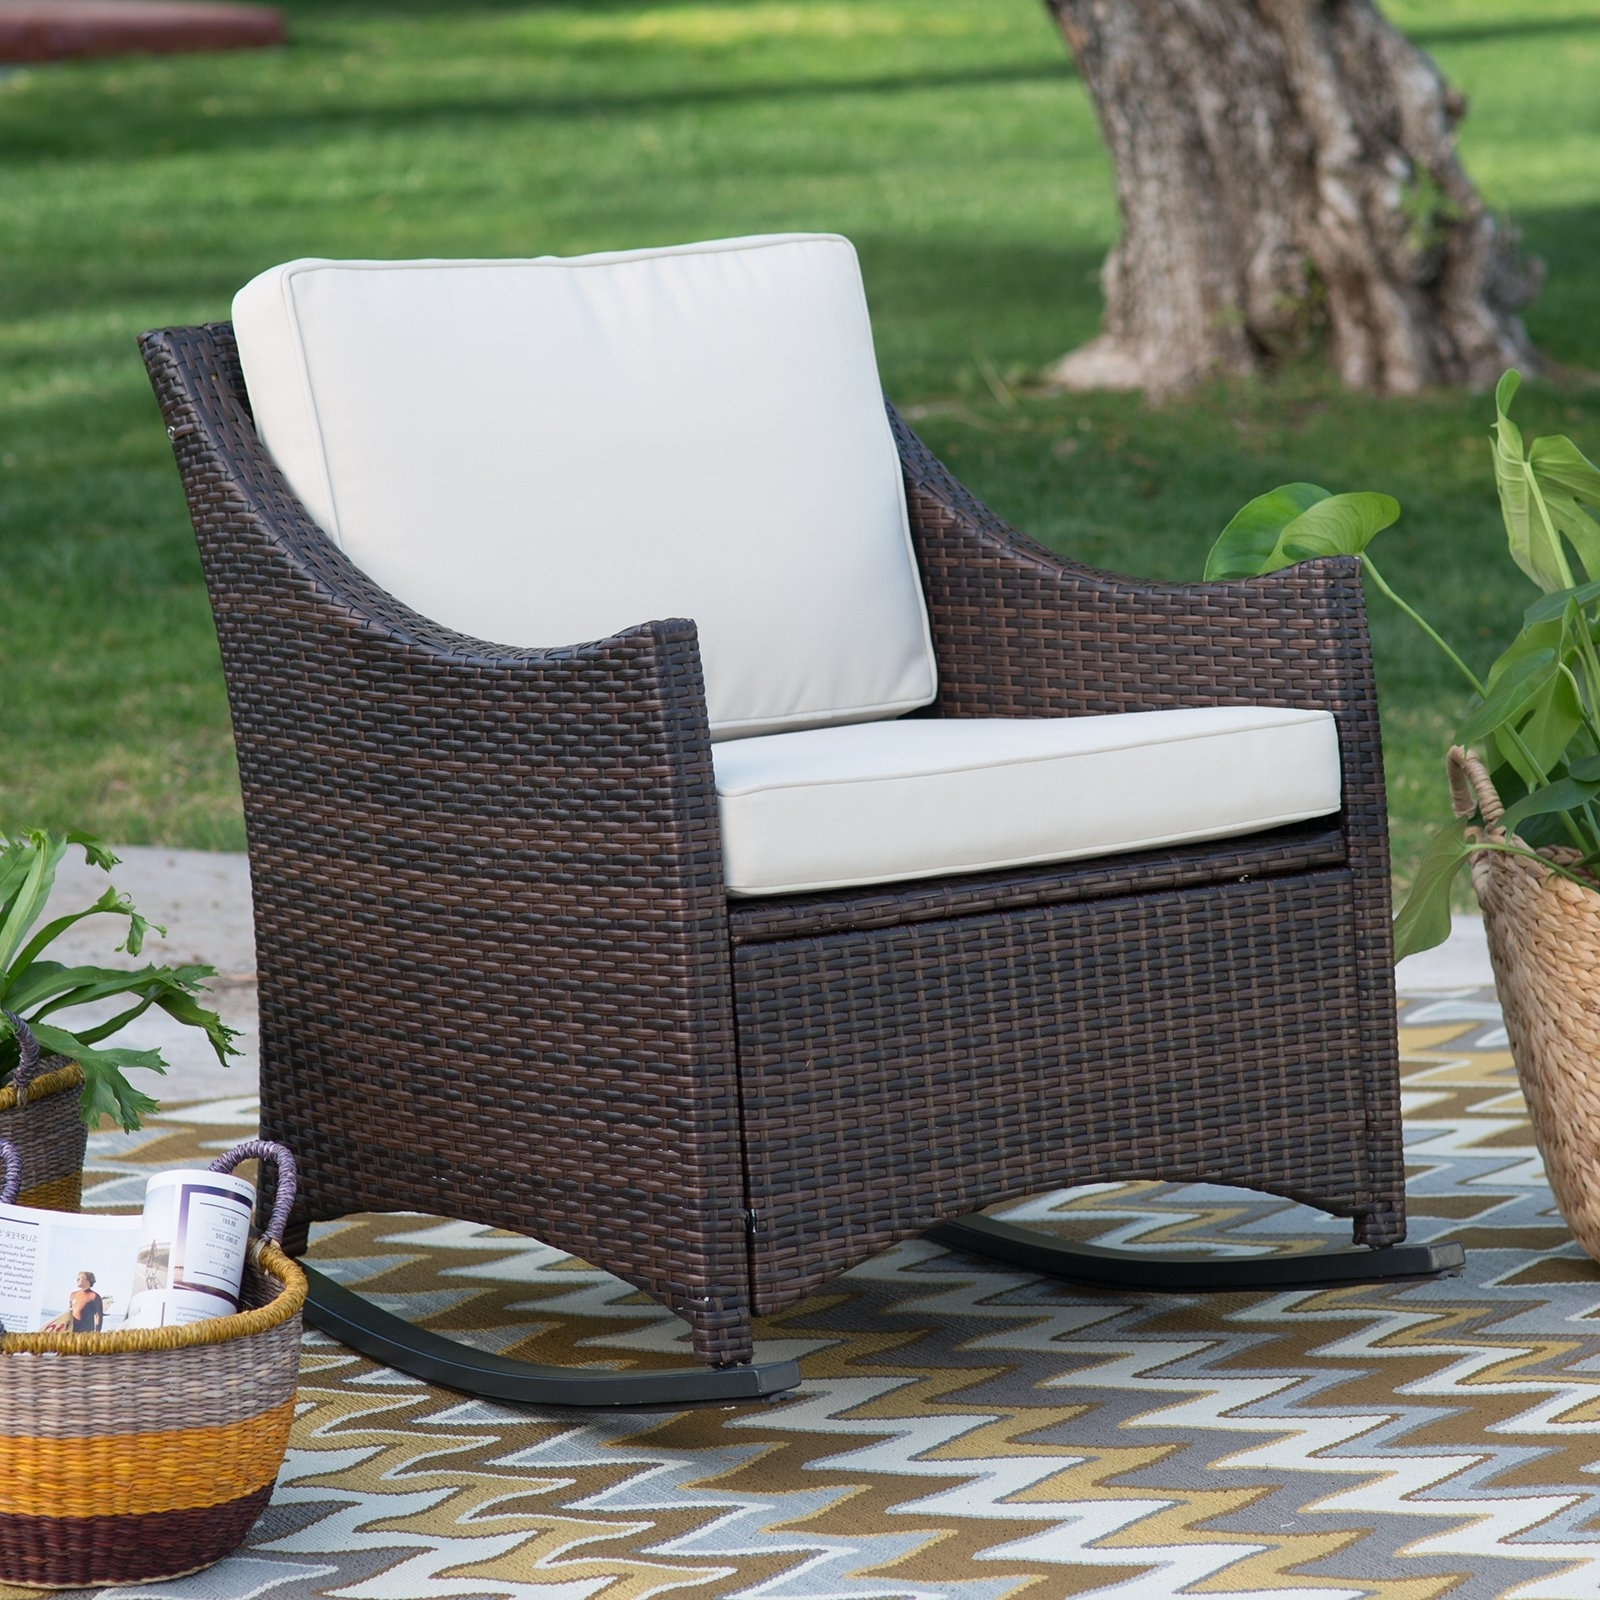 Rattan Outdoor Rocking Chairs In Current Wicker Outdoor Rocking Chair Discount Chairs Gracie's 20 Cushions (View 12 of 20)